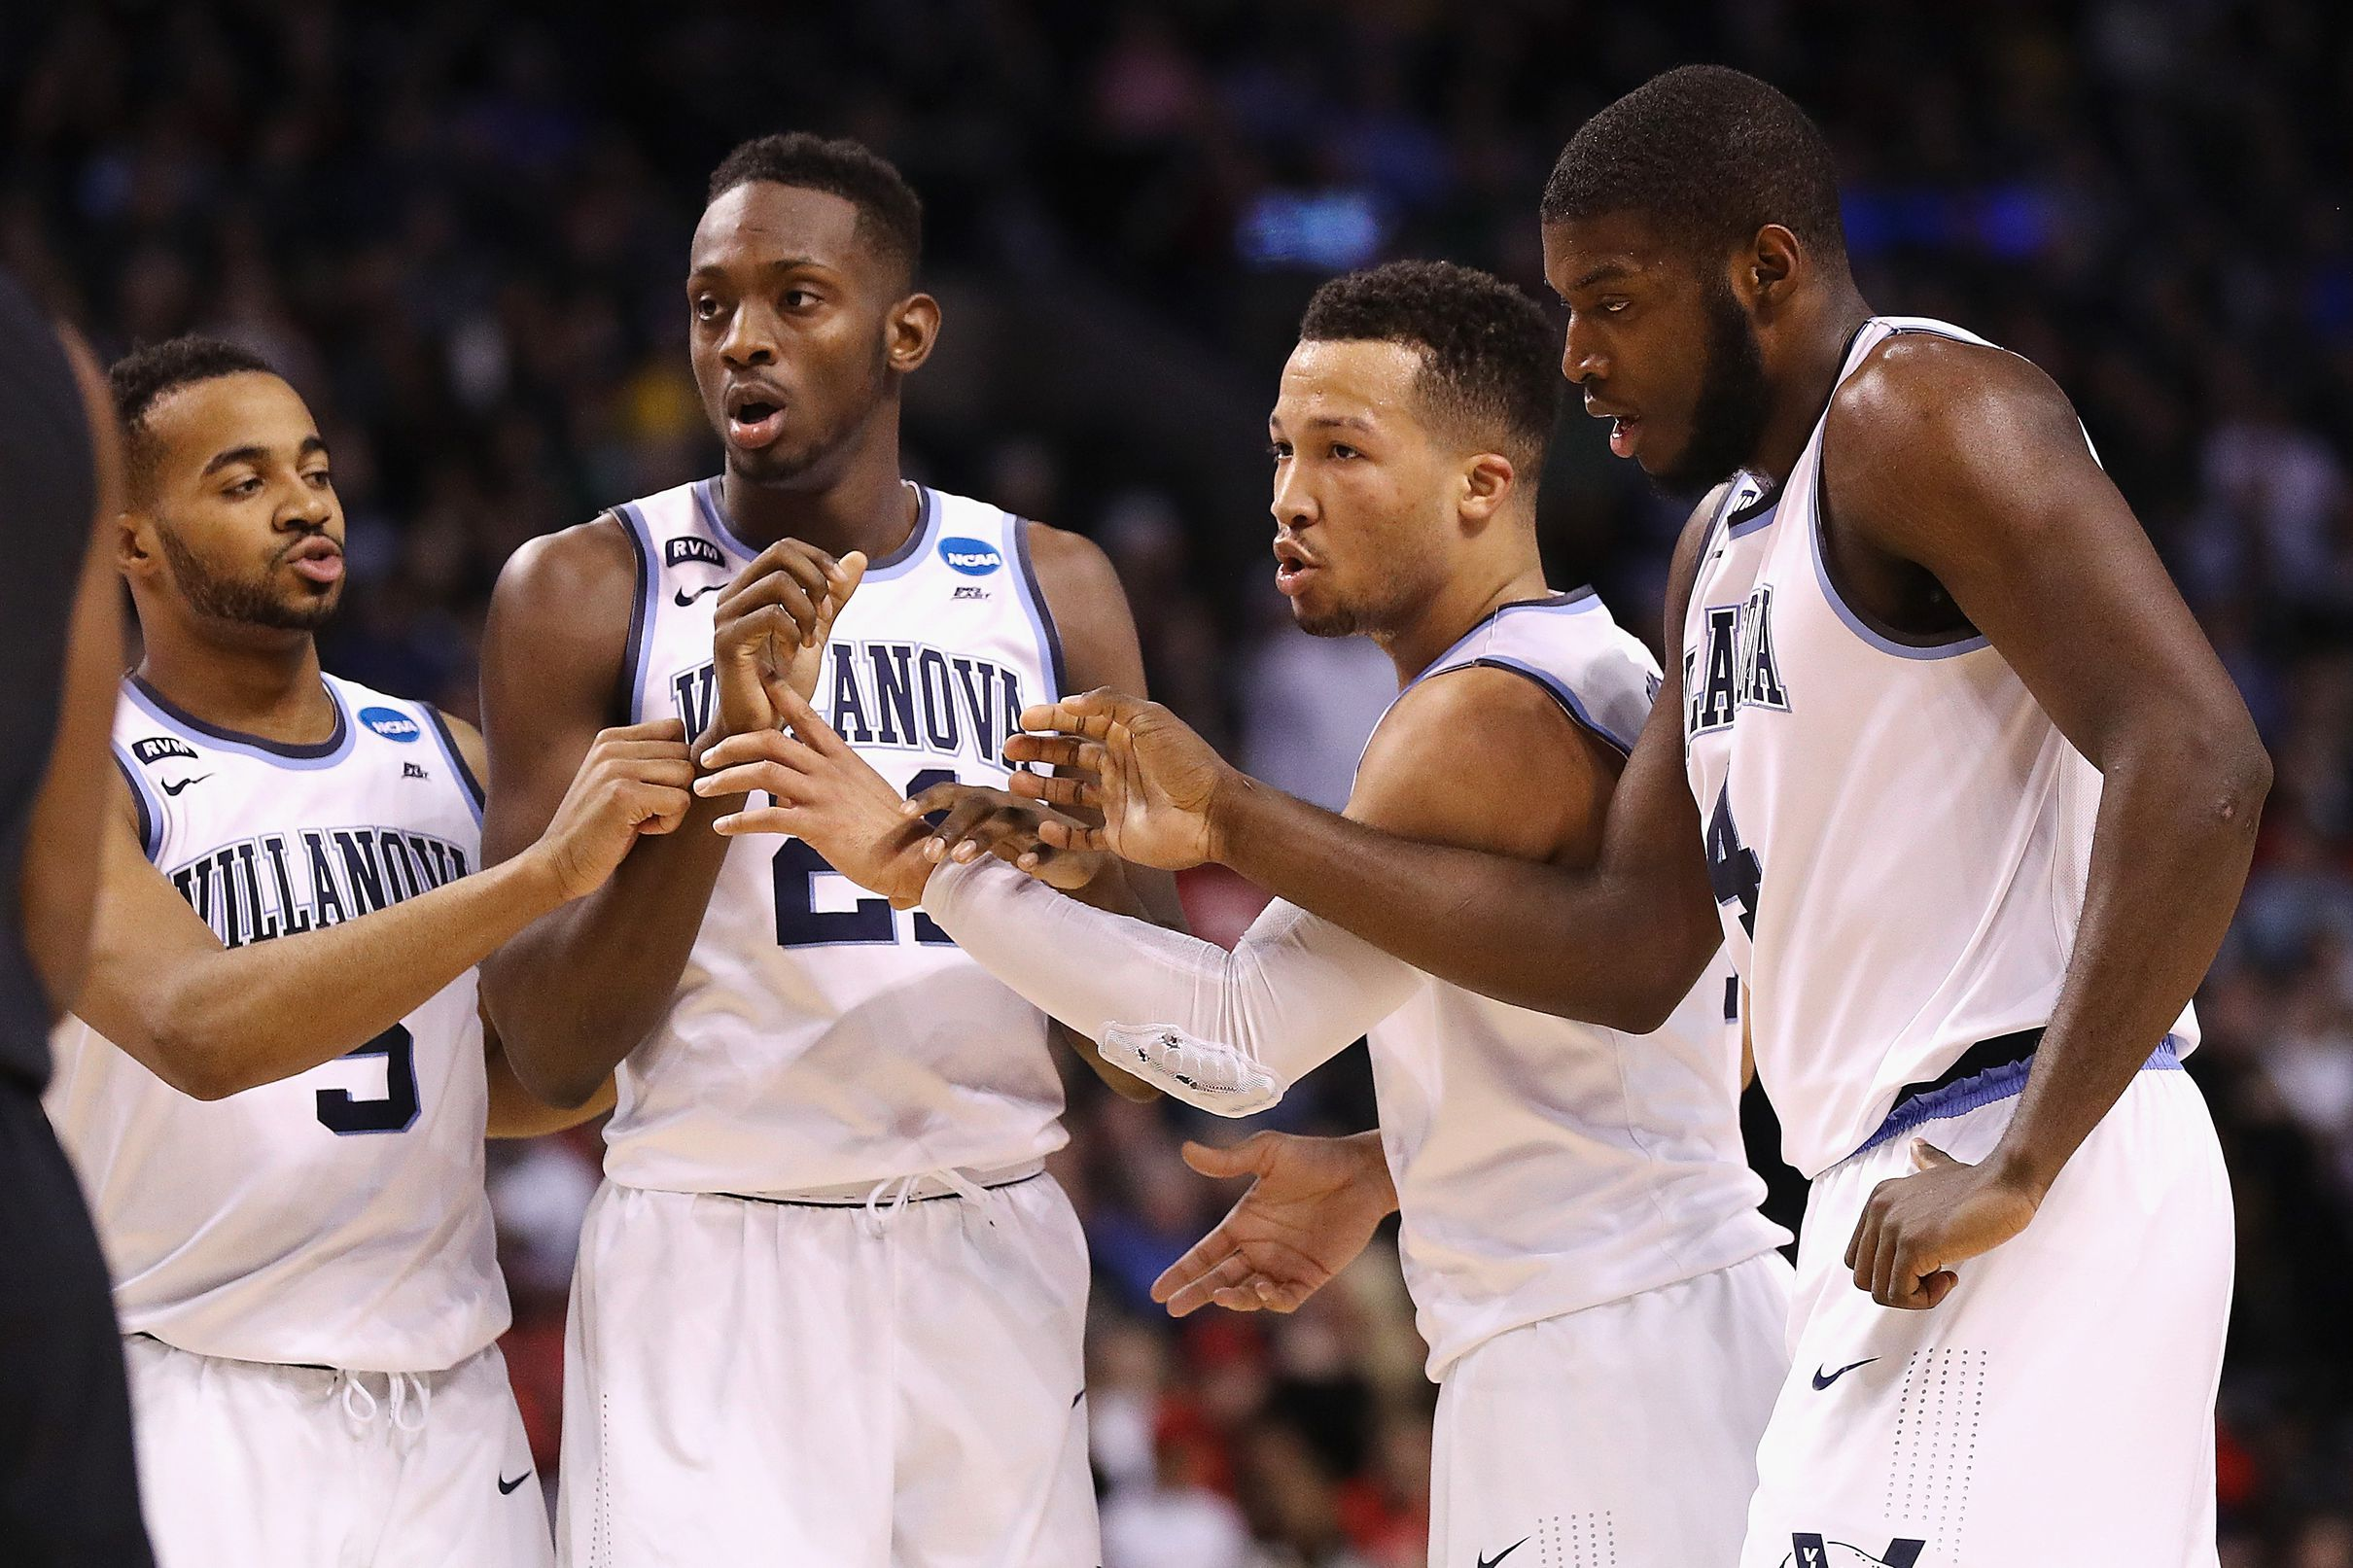 Villanova, as tough as ever, is the best team in the Final